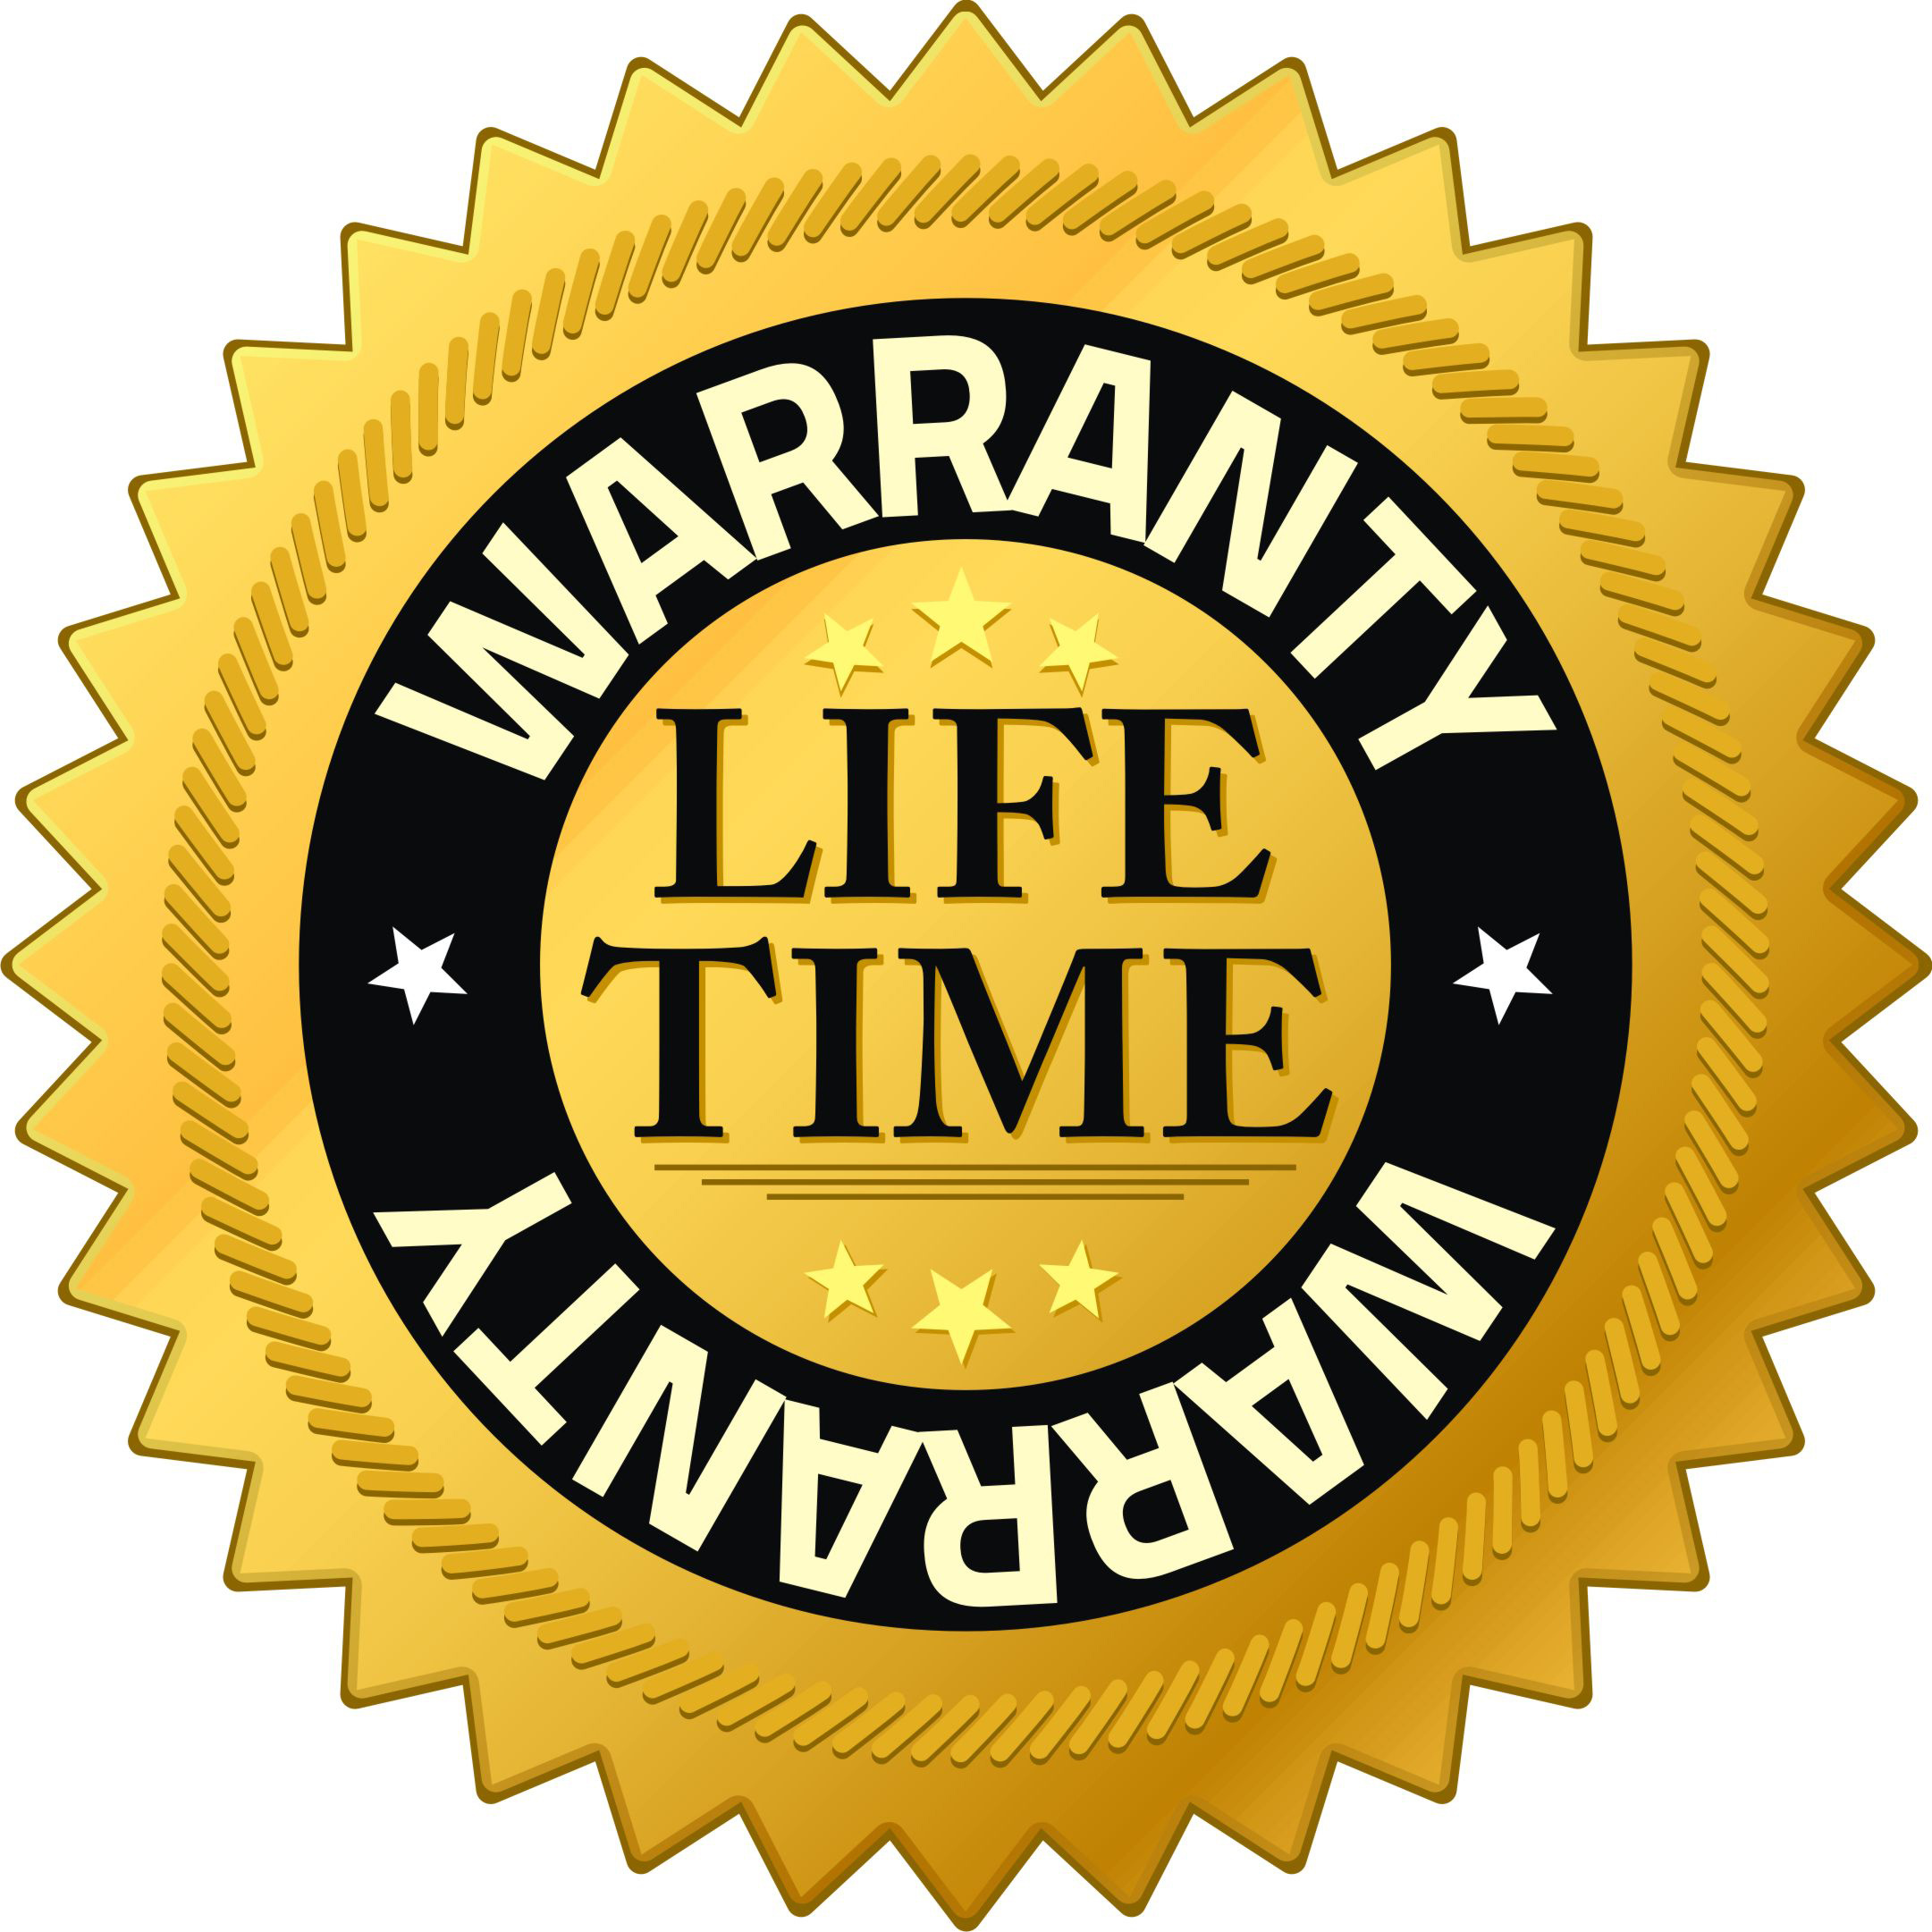 Lifetime warranty for the TrunkCratePro trunk organizer for cars, suvs, vans, minivans, trucks, rvs and autos